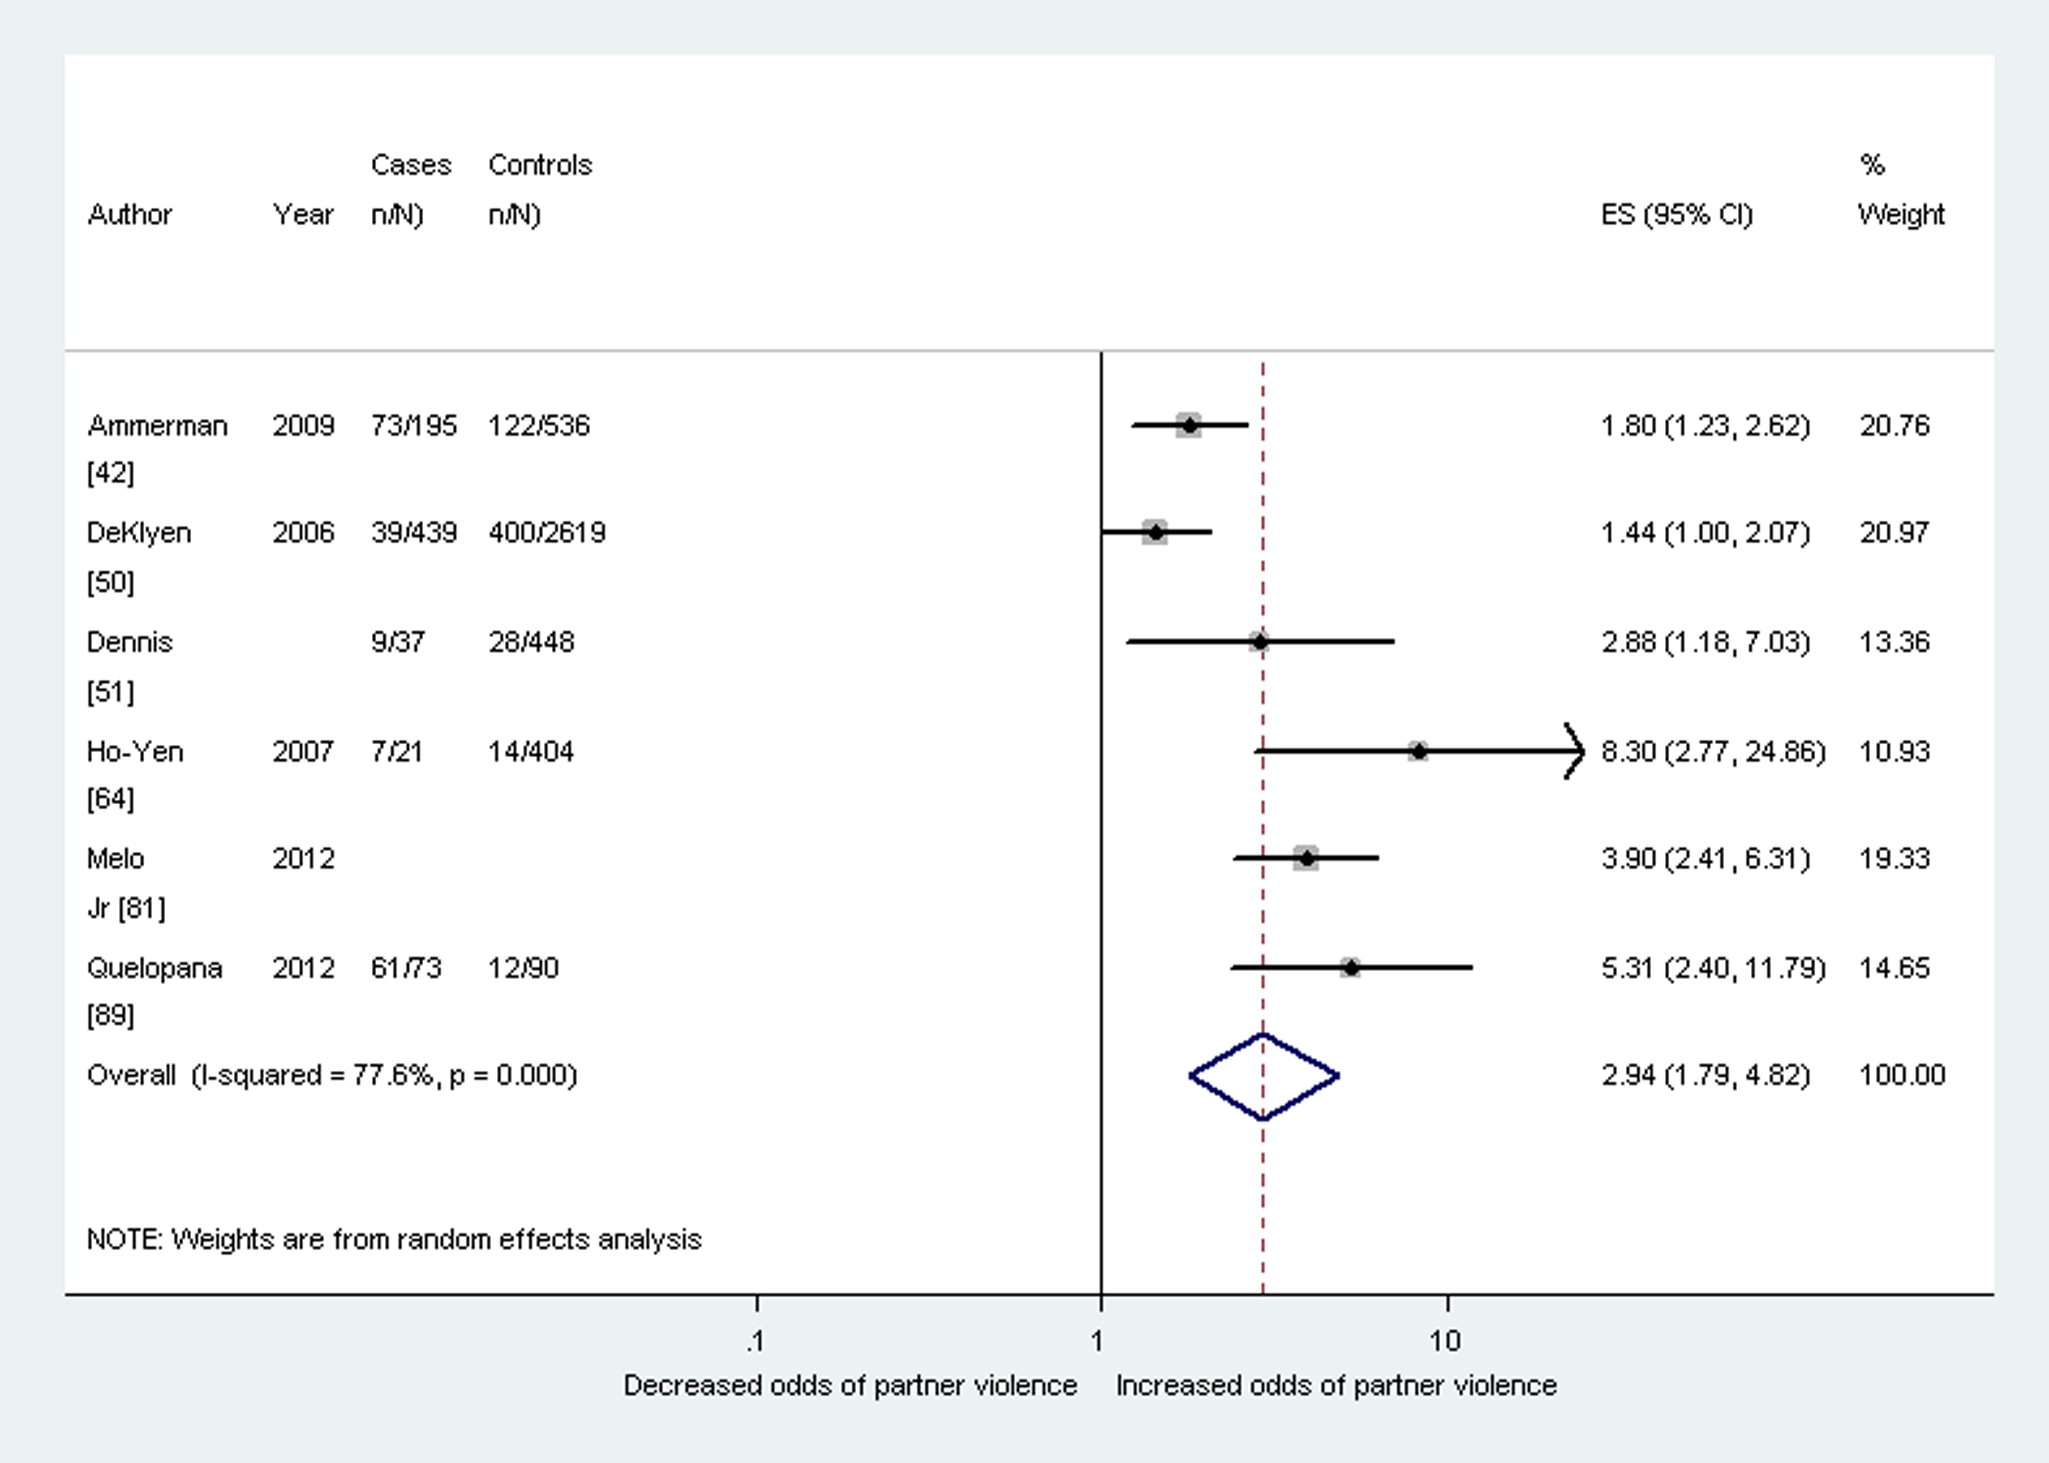 Meta-analysis of the association between postnatal depression and any lifetime partner violence (cross-sectional studies).